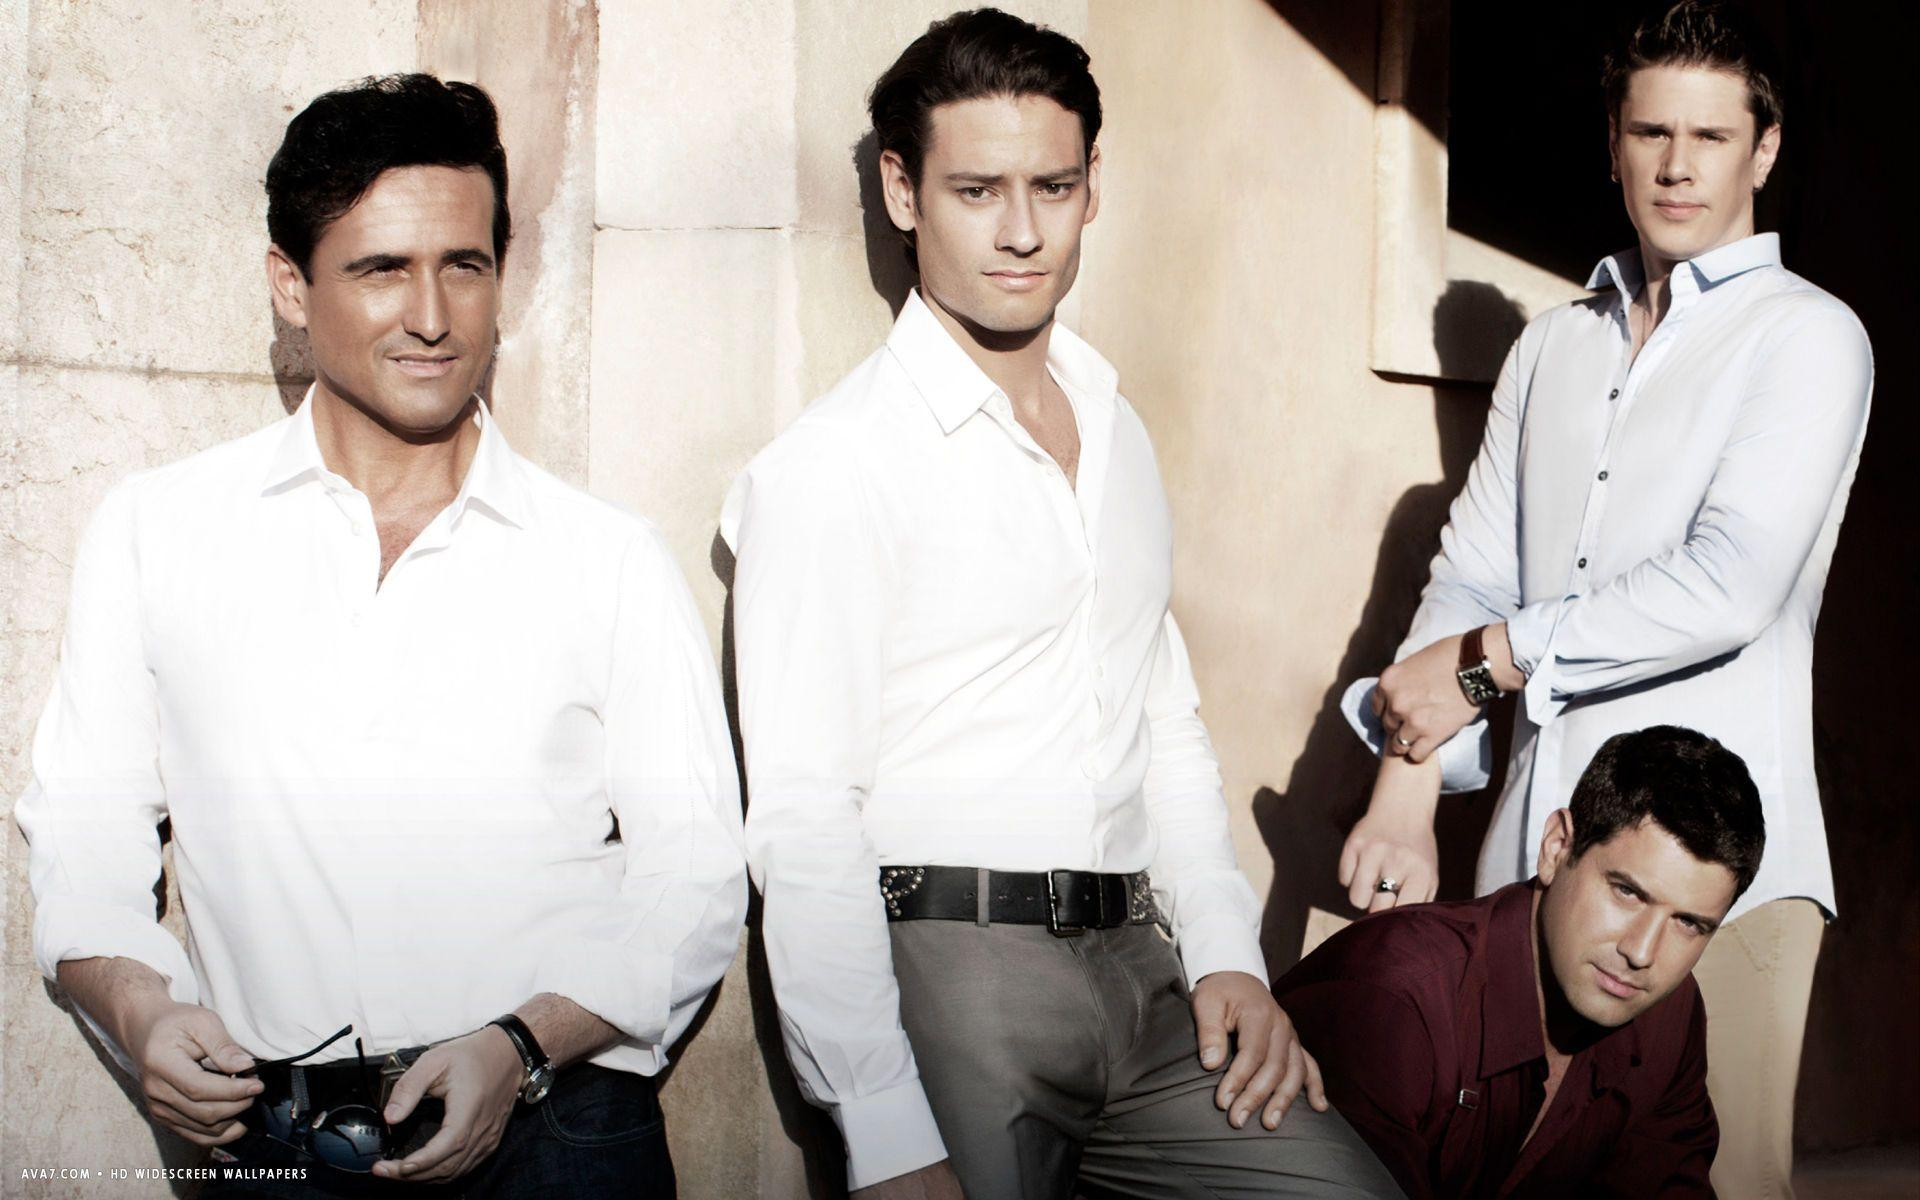 Il divo wallpapers wallpaper cave - Divo music group ...